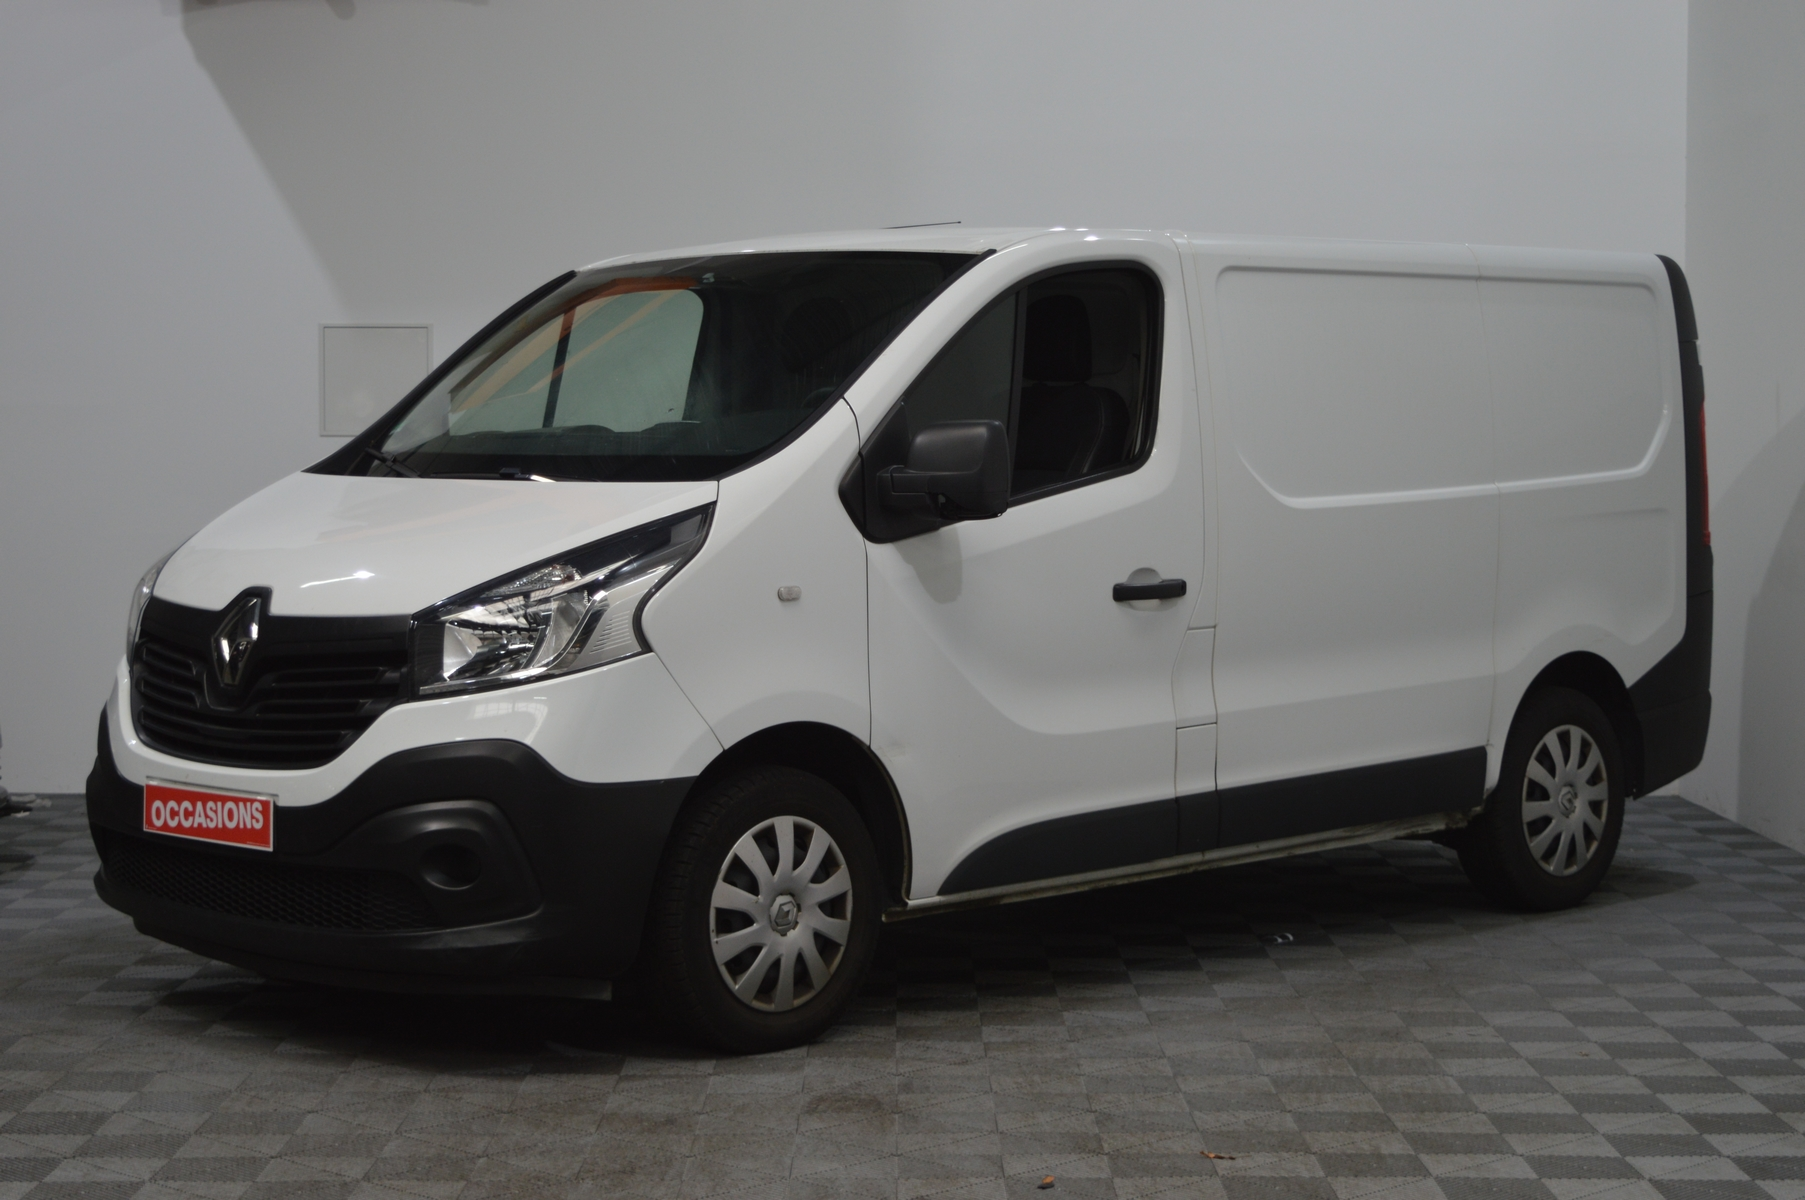 RENAULT TRAFIC FOURGON FG GCF L1H1 1200 Energy dCi 125 d'occasion